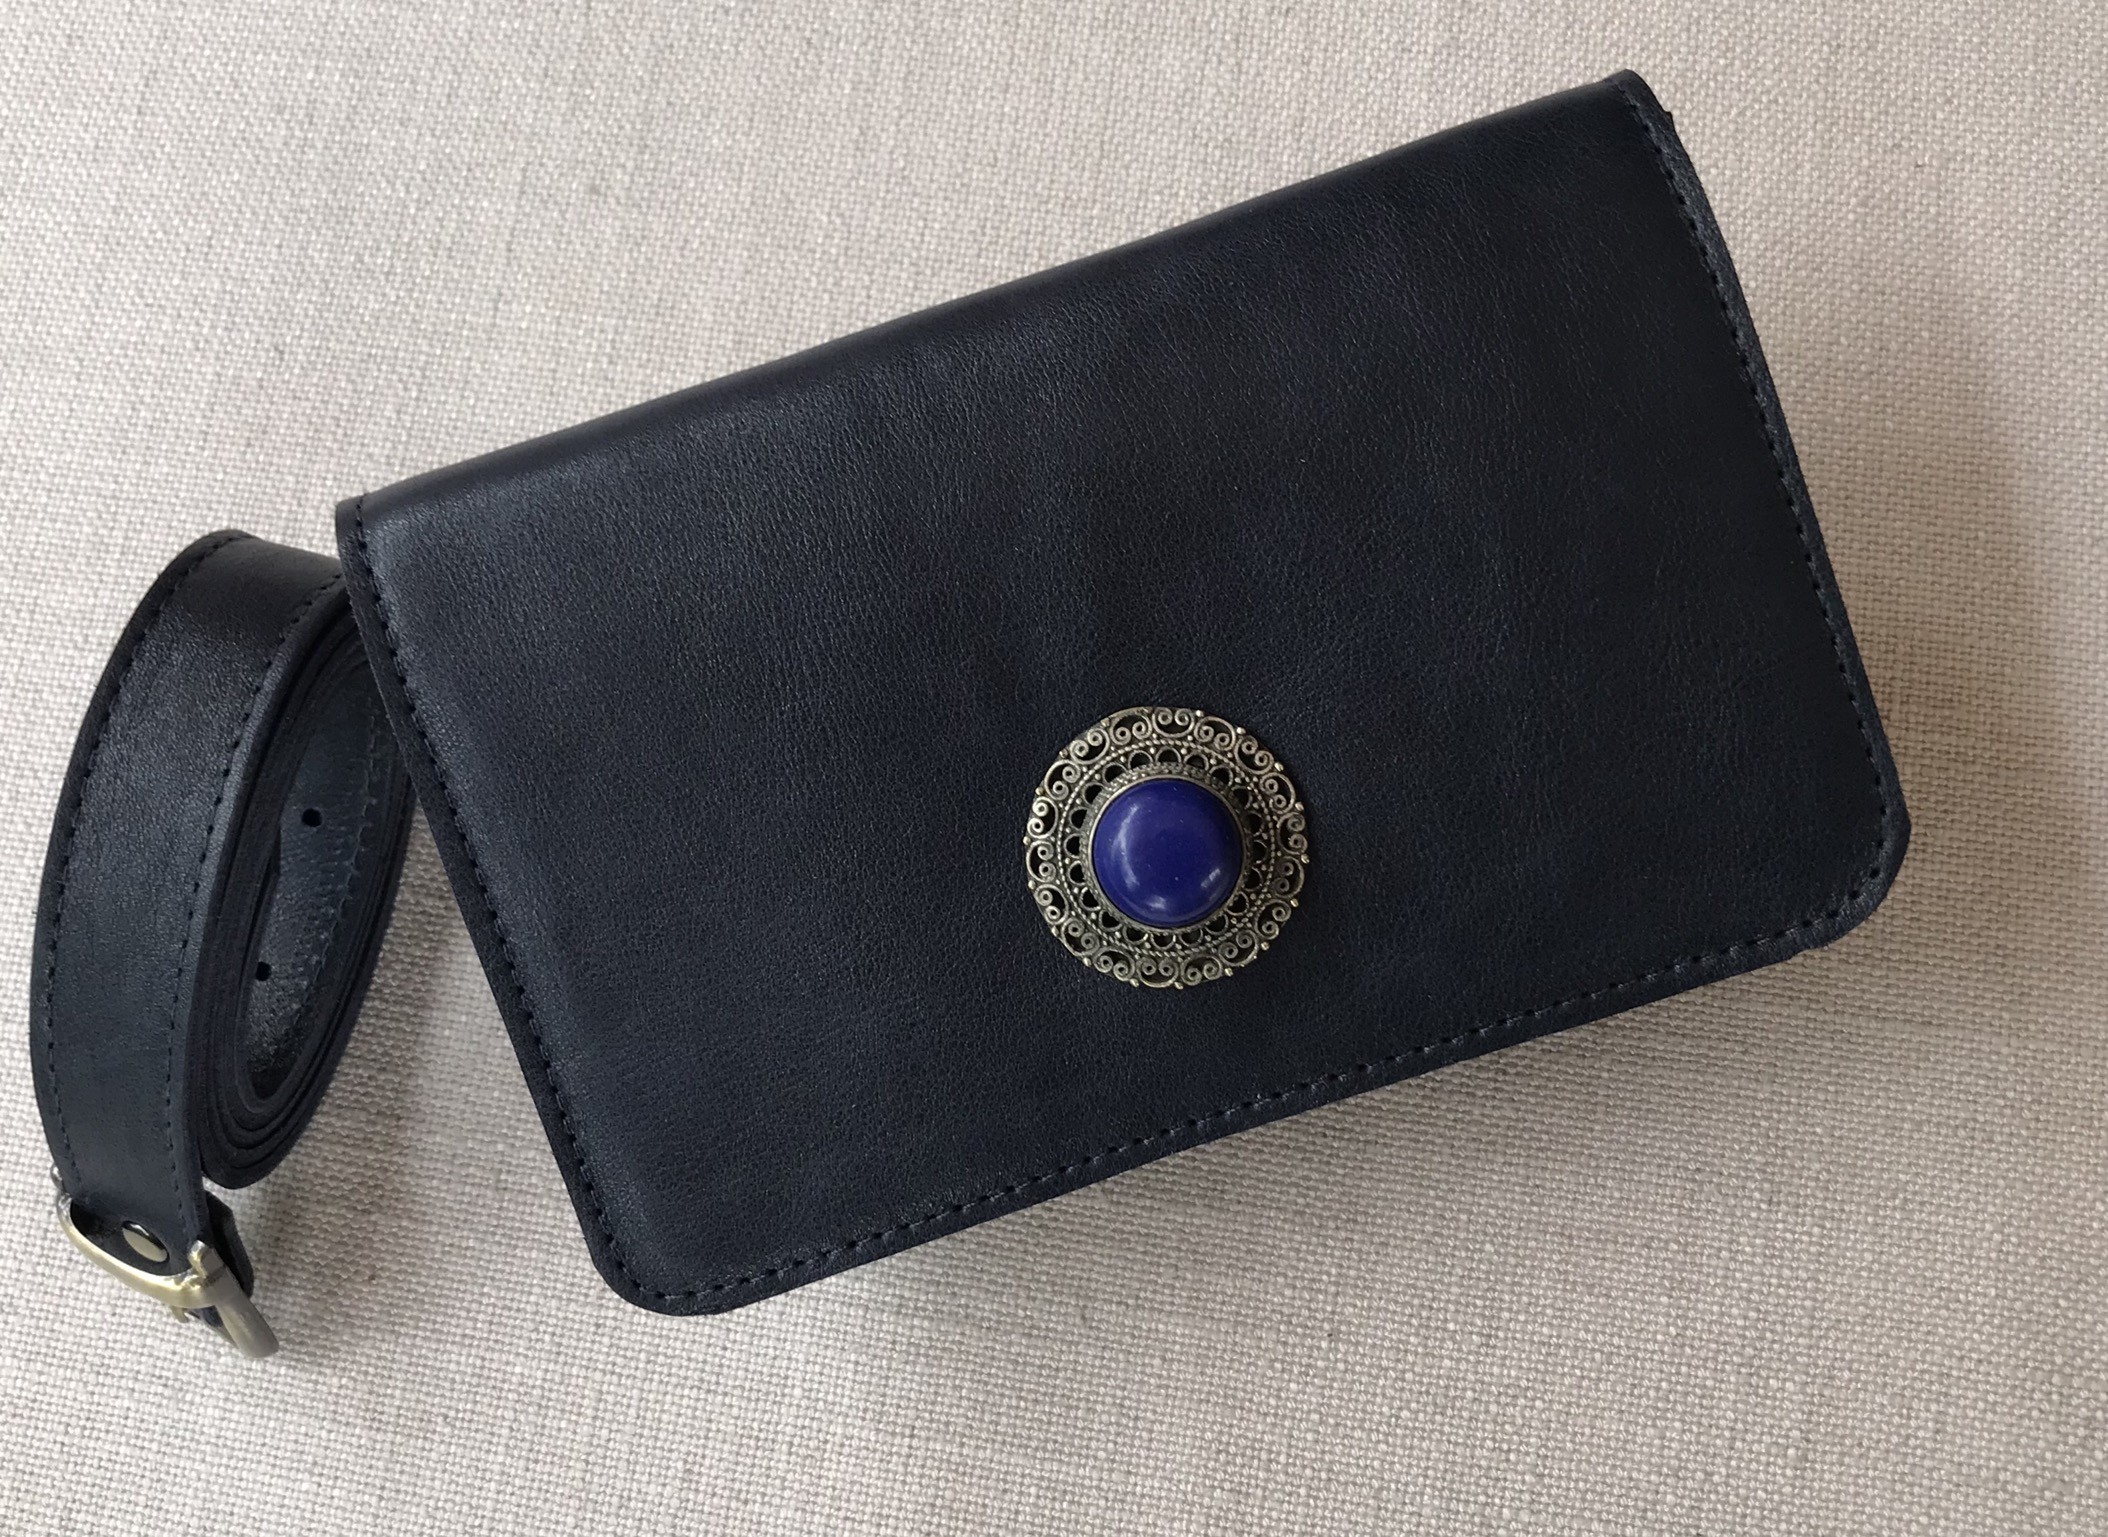 Beltbag leather blue navy with artisanal jewelry blue